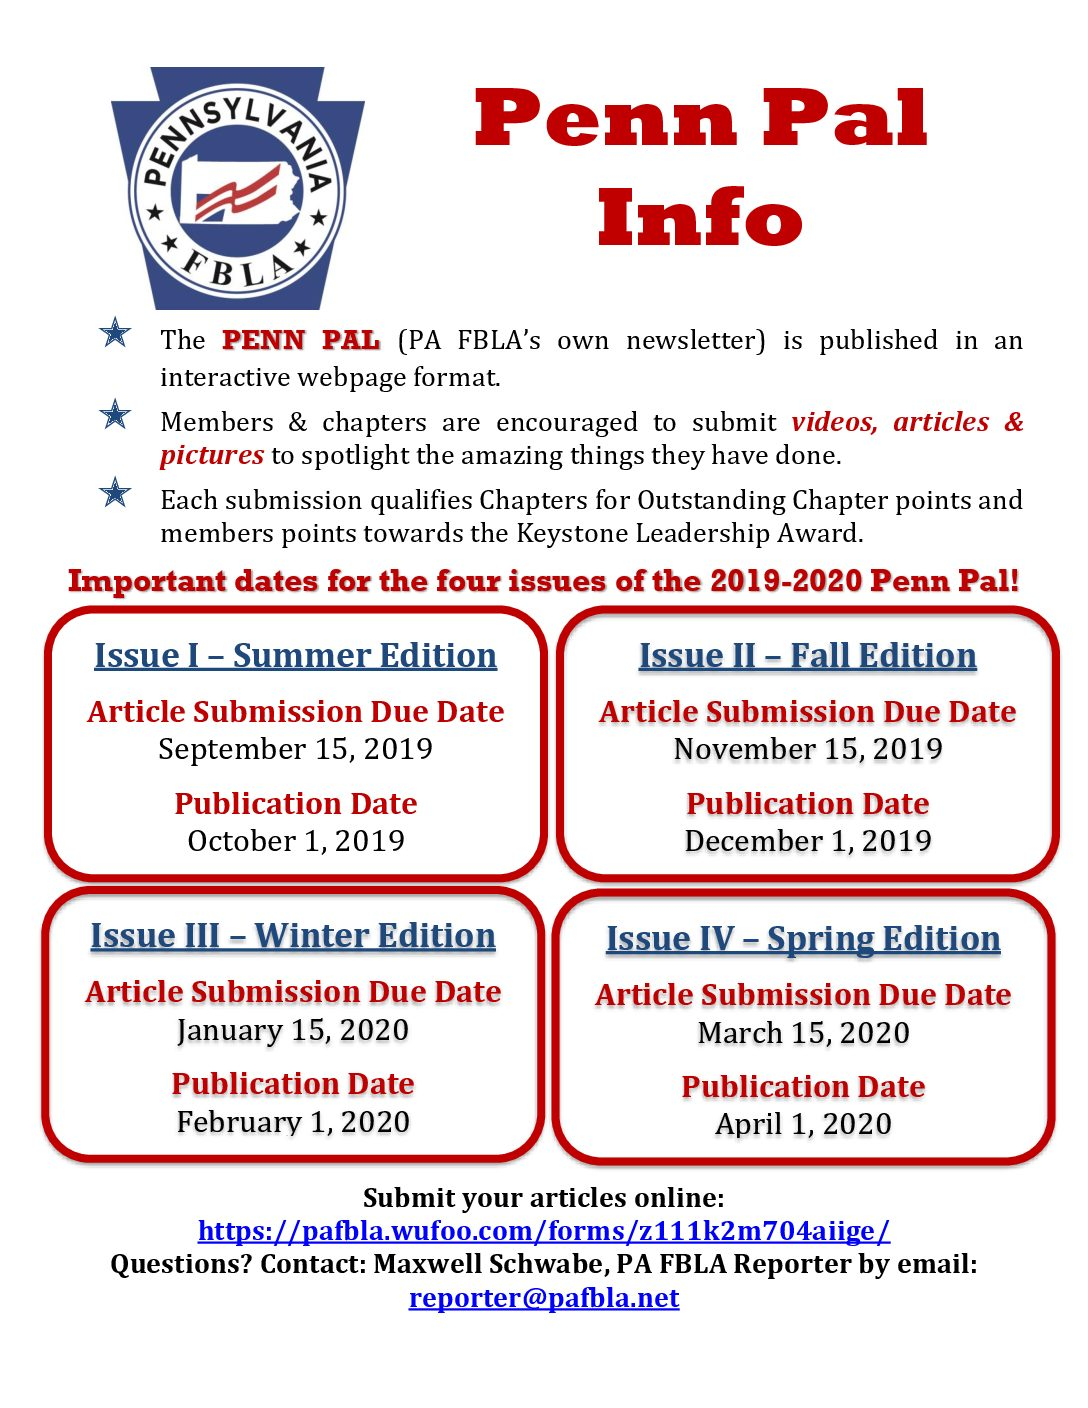 Penn Pal Due Dates